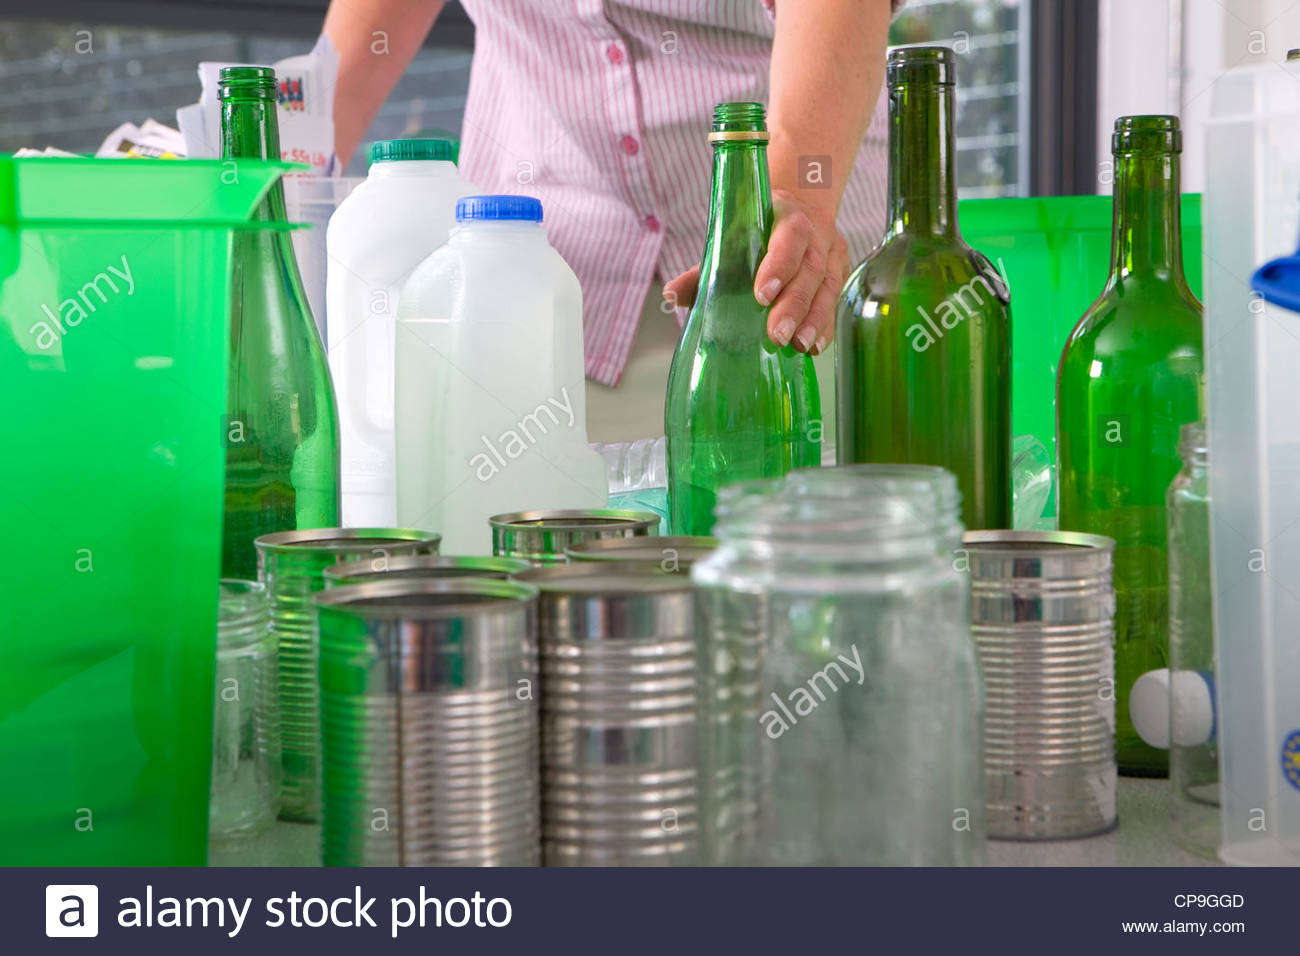 Teacher standing with recyclables and bins in classroom - Stock Image